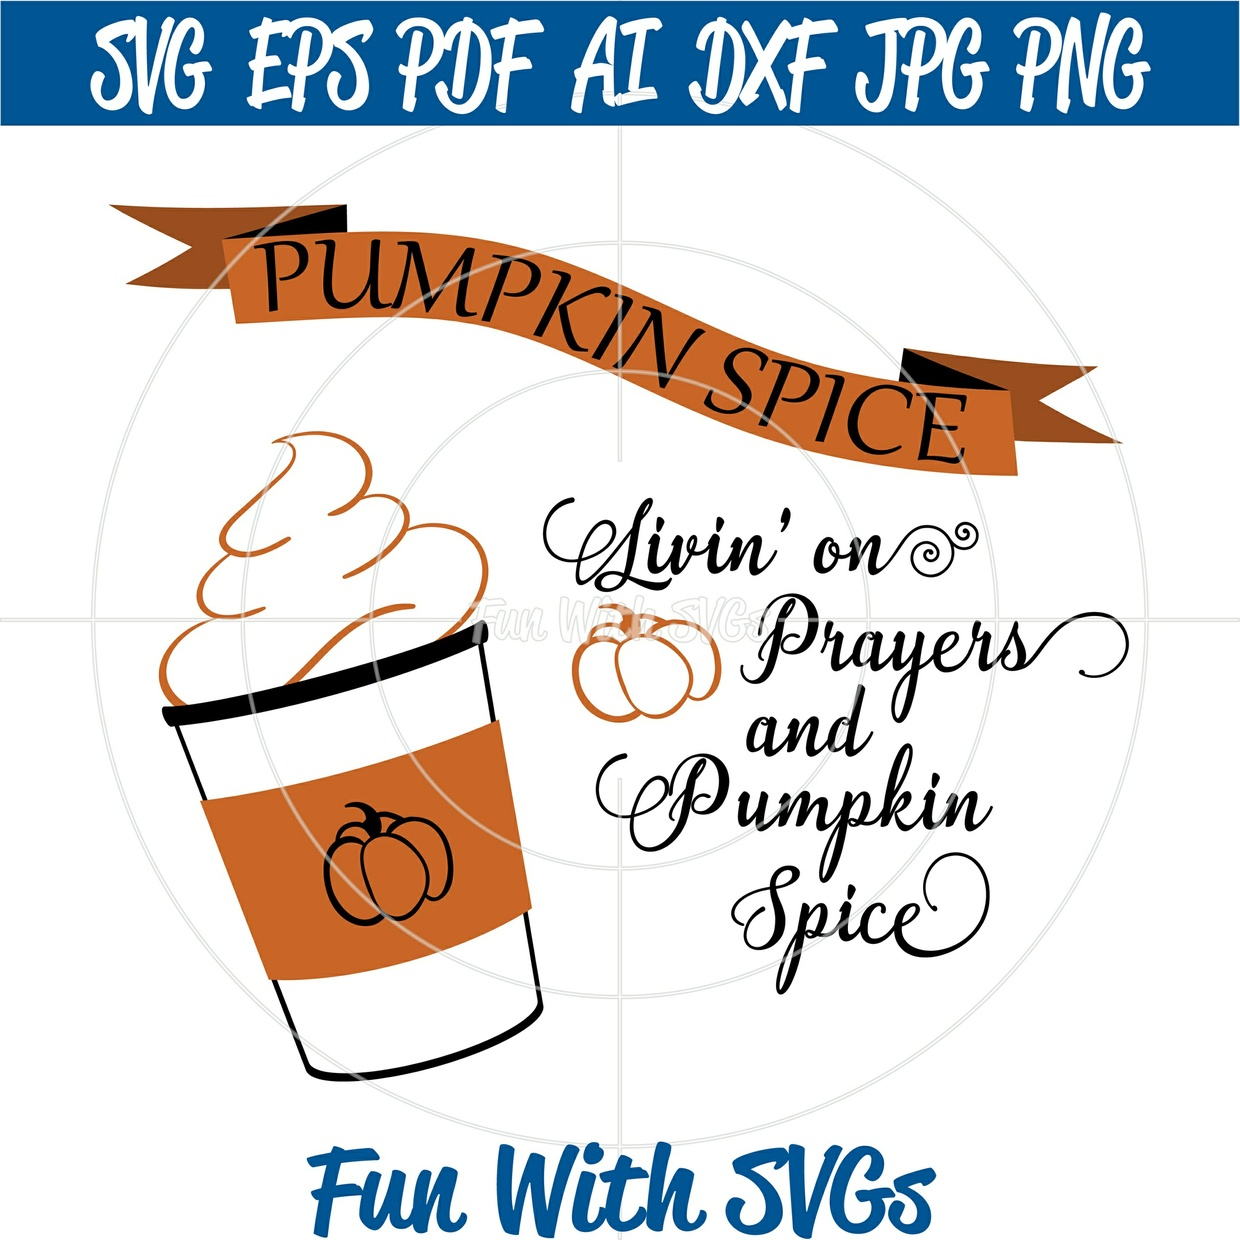 Pumpkin Spice Latte SVG, SVG Files, Cricut Files, Silhouette Files, Livin' on Prayers Pumpkin Spice